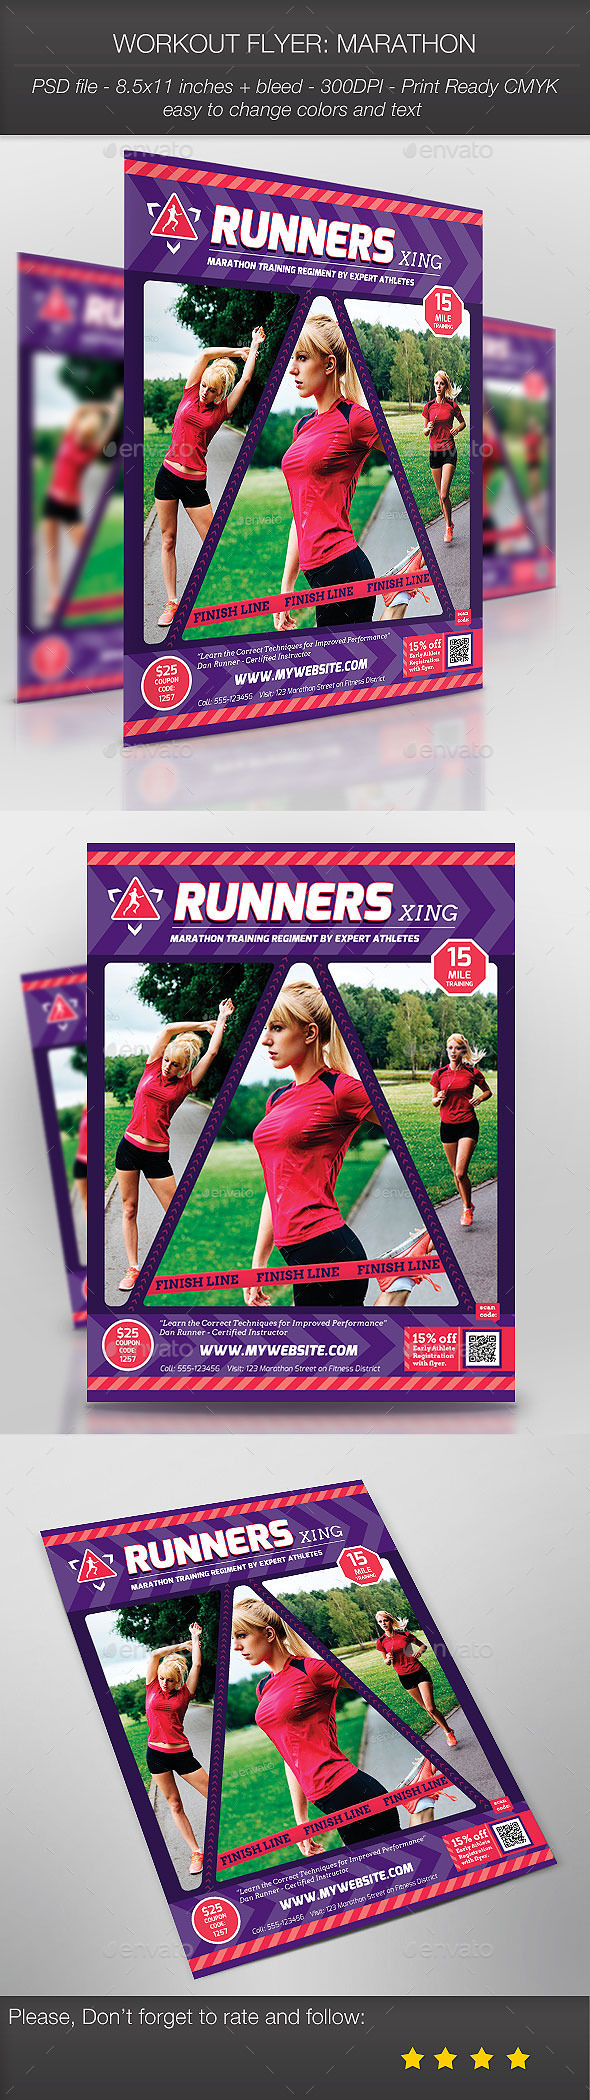 GraphicRiver Workout Flyer Marathon 9214529